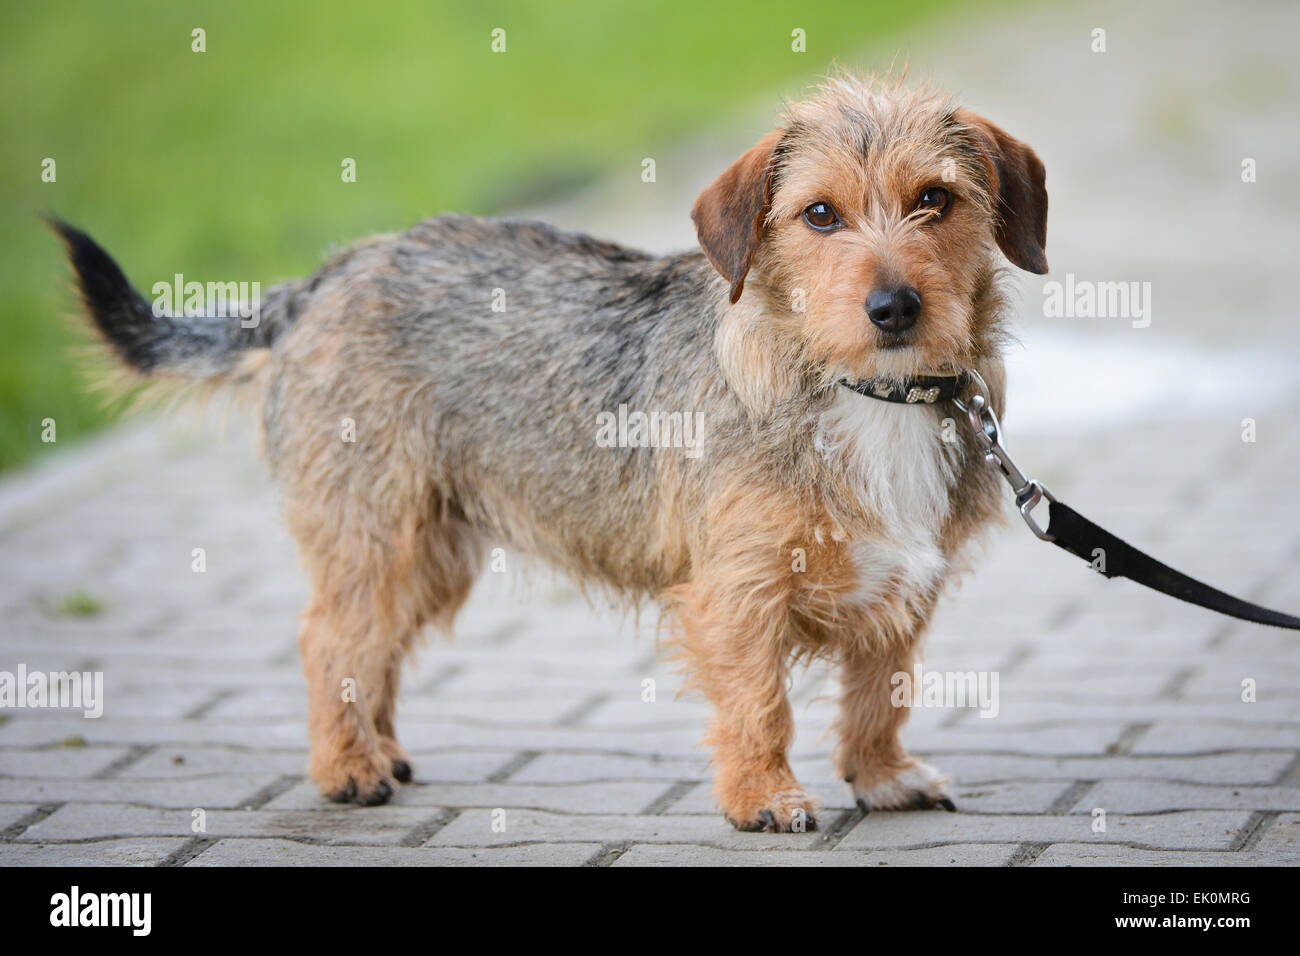 Wire Haired Terrier : Wire haired terrier dog on lead stock photo alamy